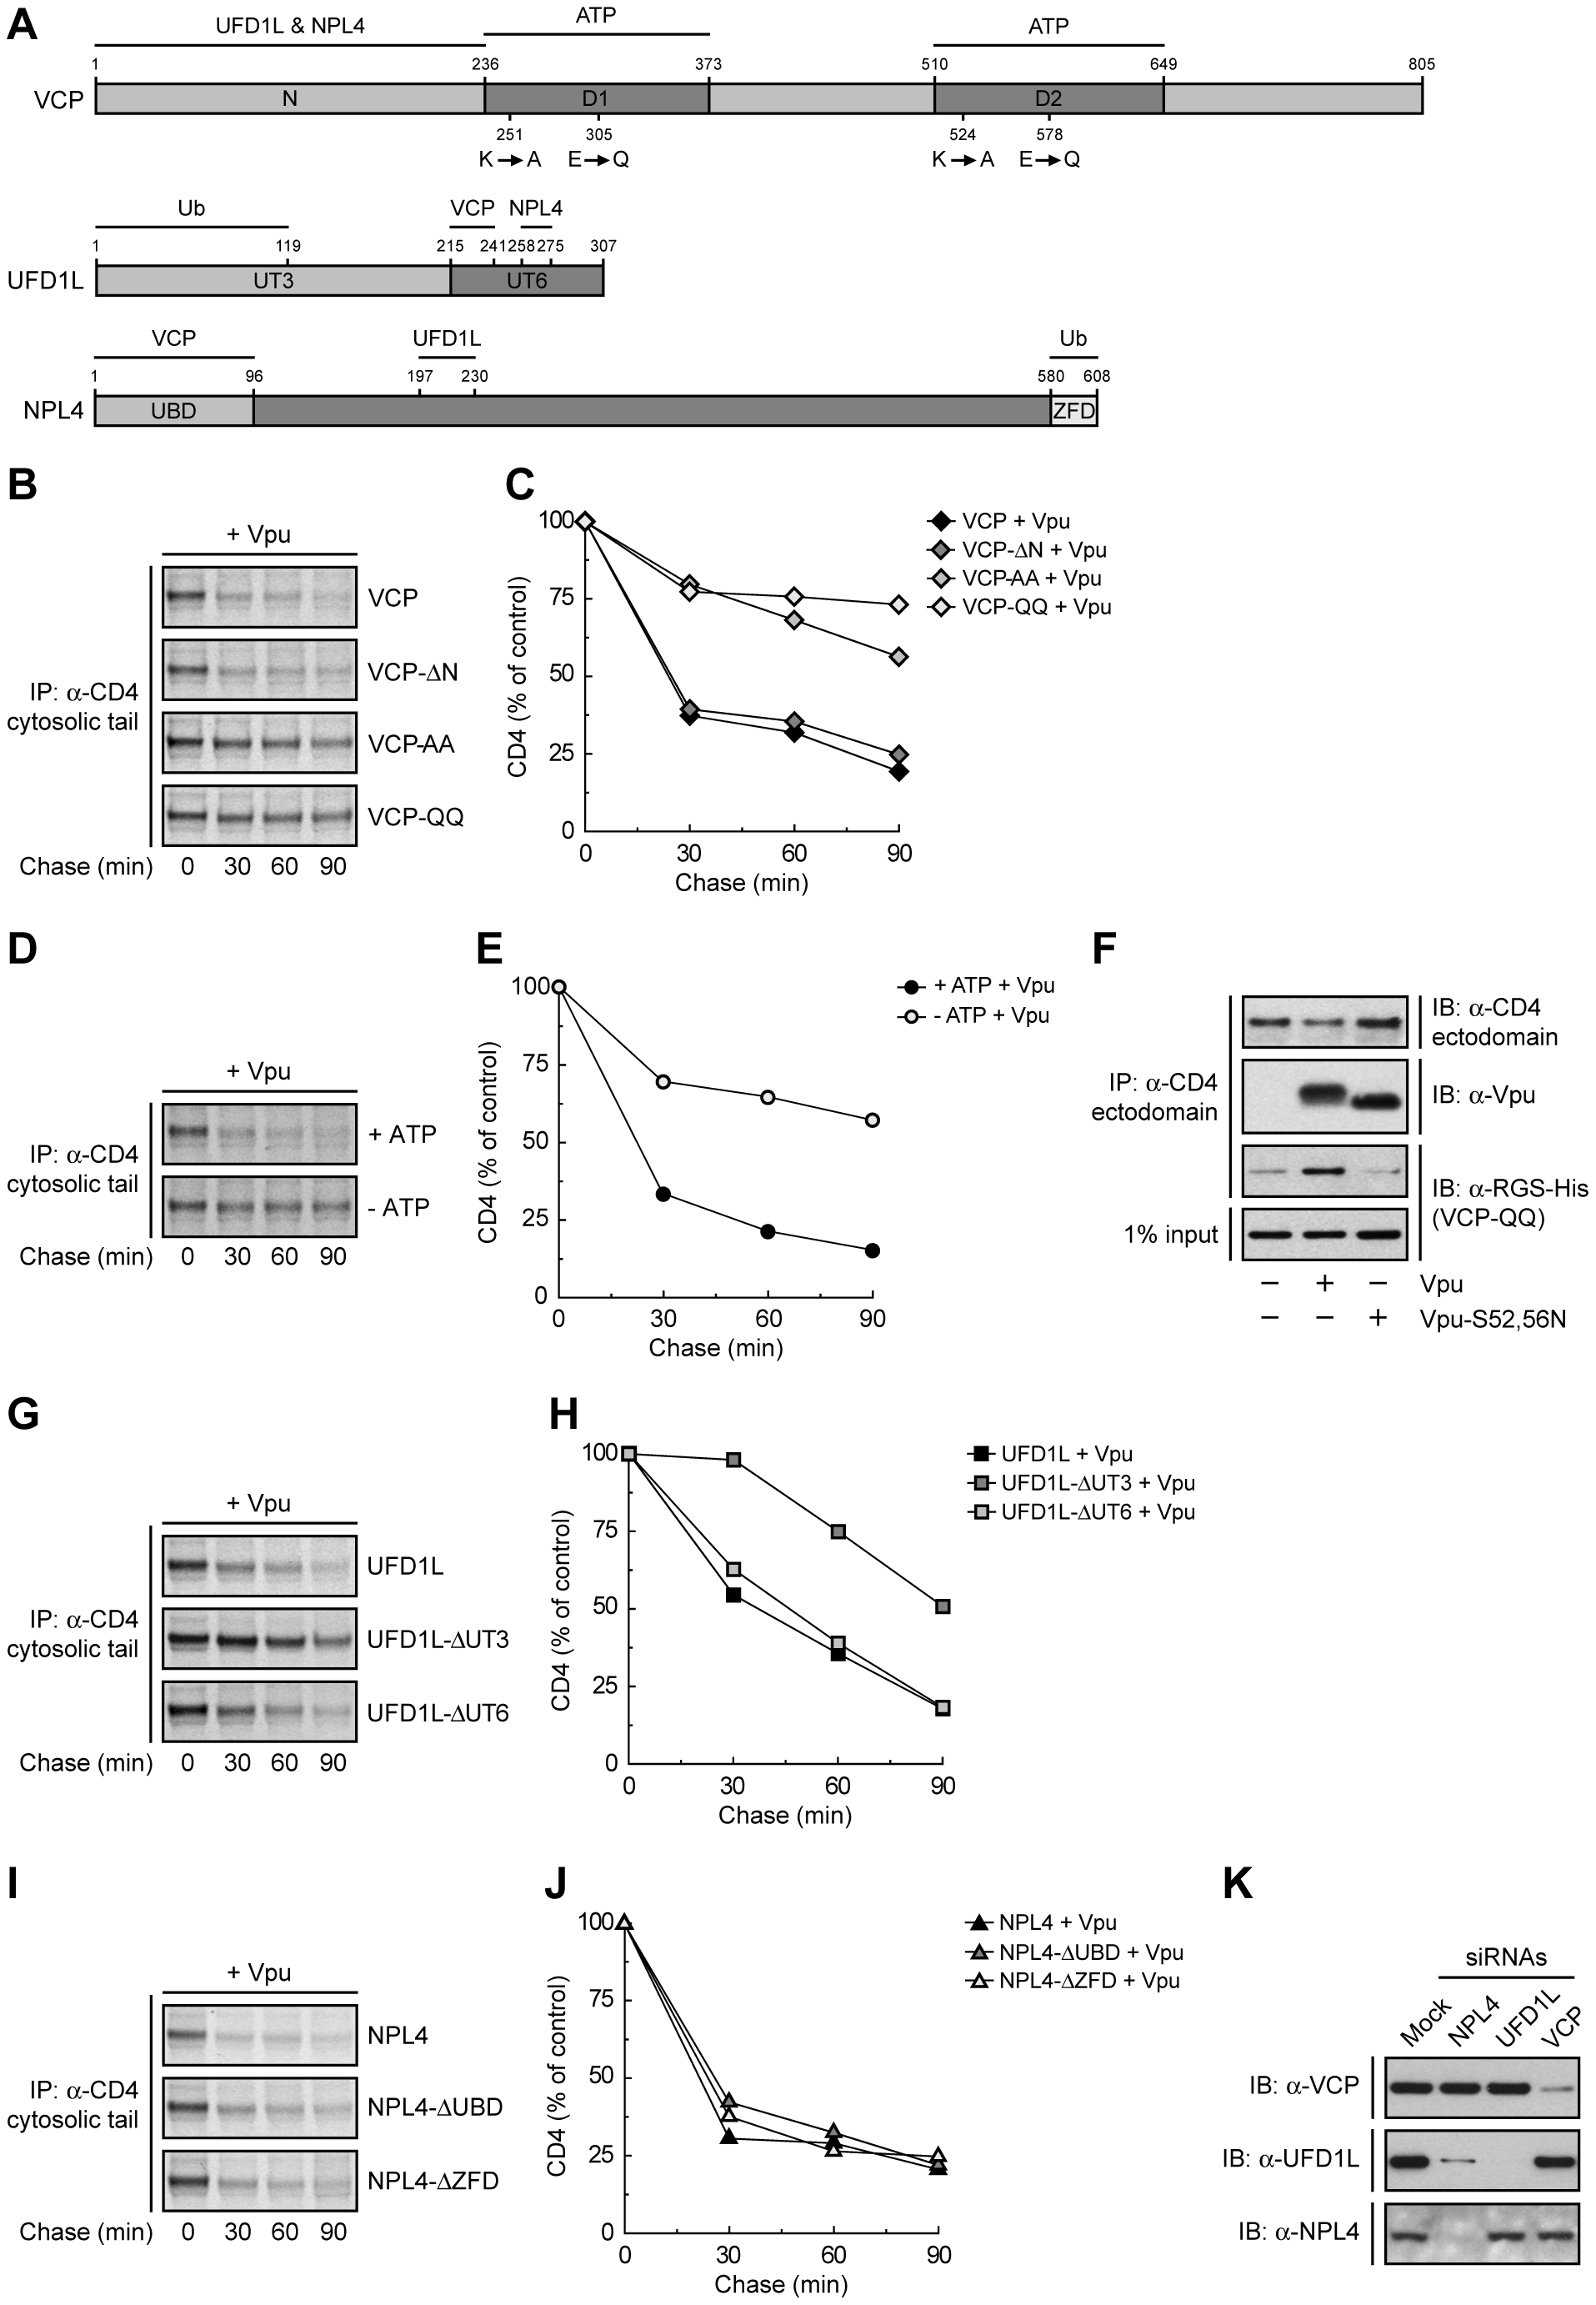 Specific functions for each member of the VCP-UFD1L-NPL4 complex in Vpu-mediated CD4 degradation.